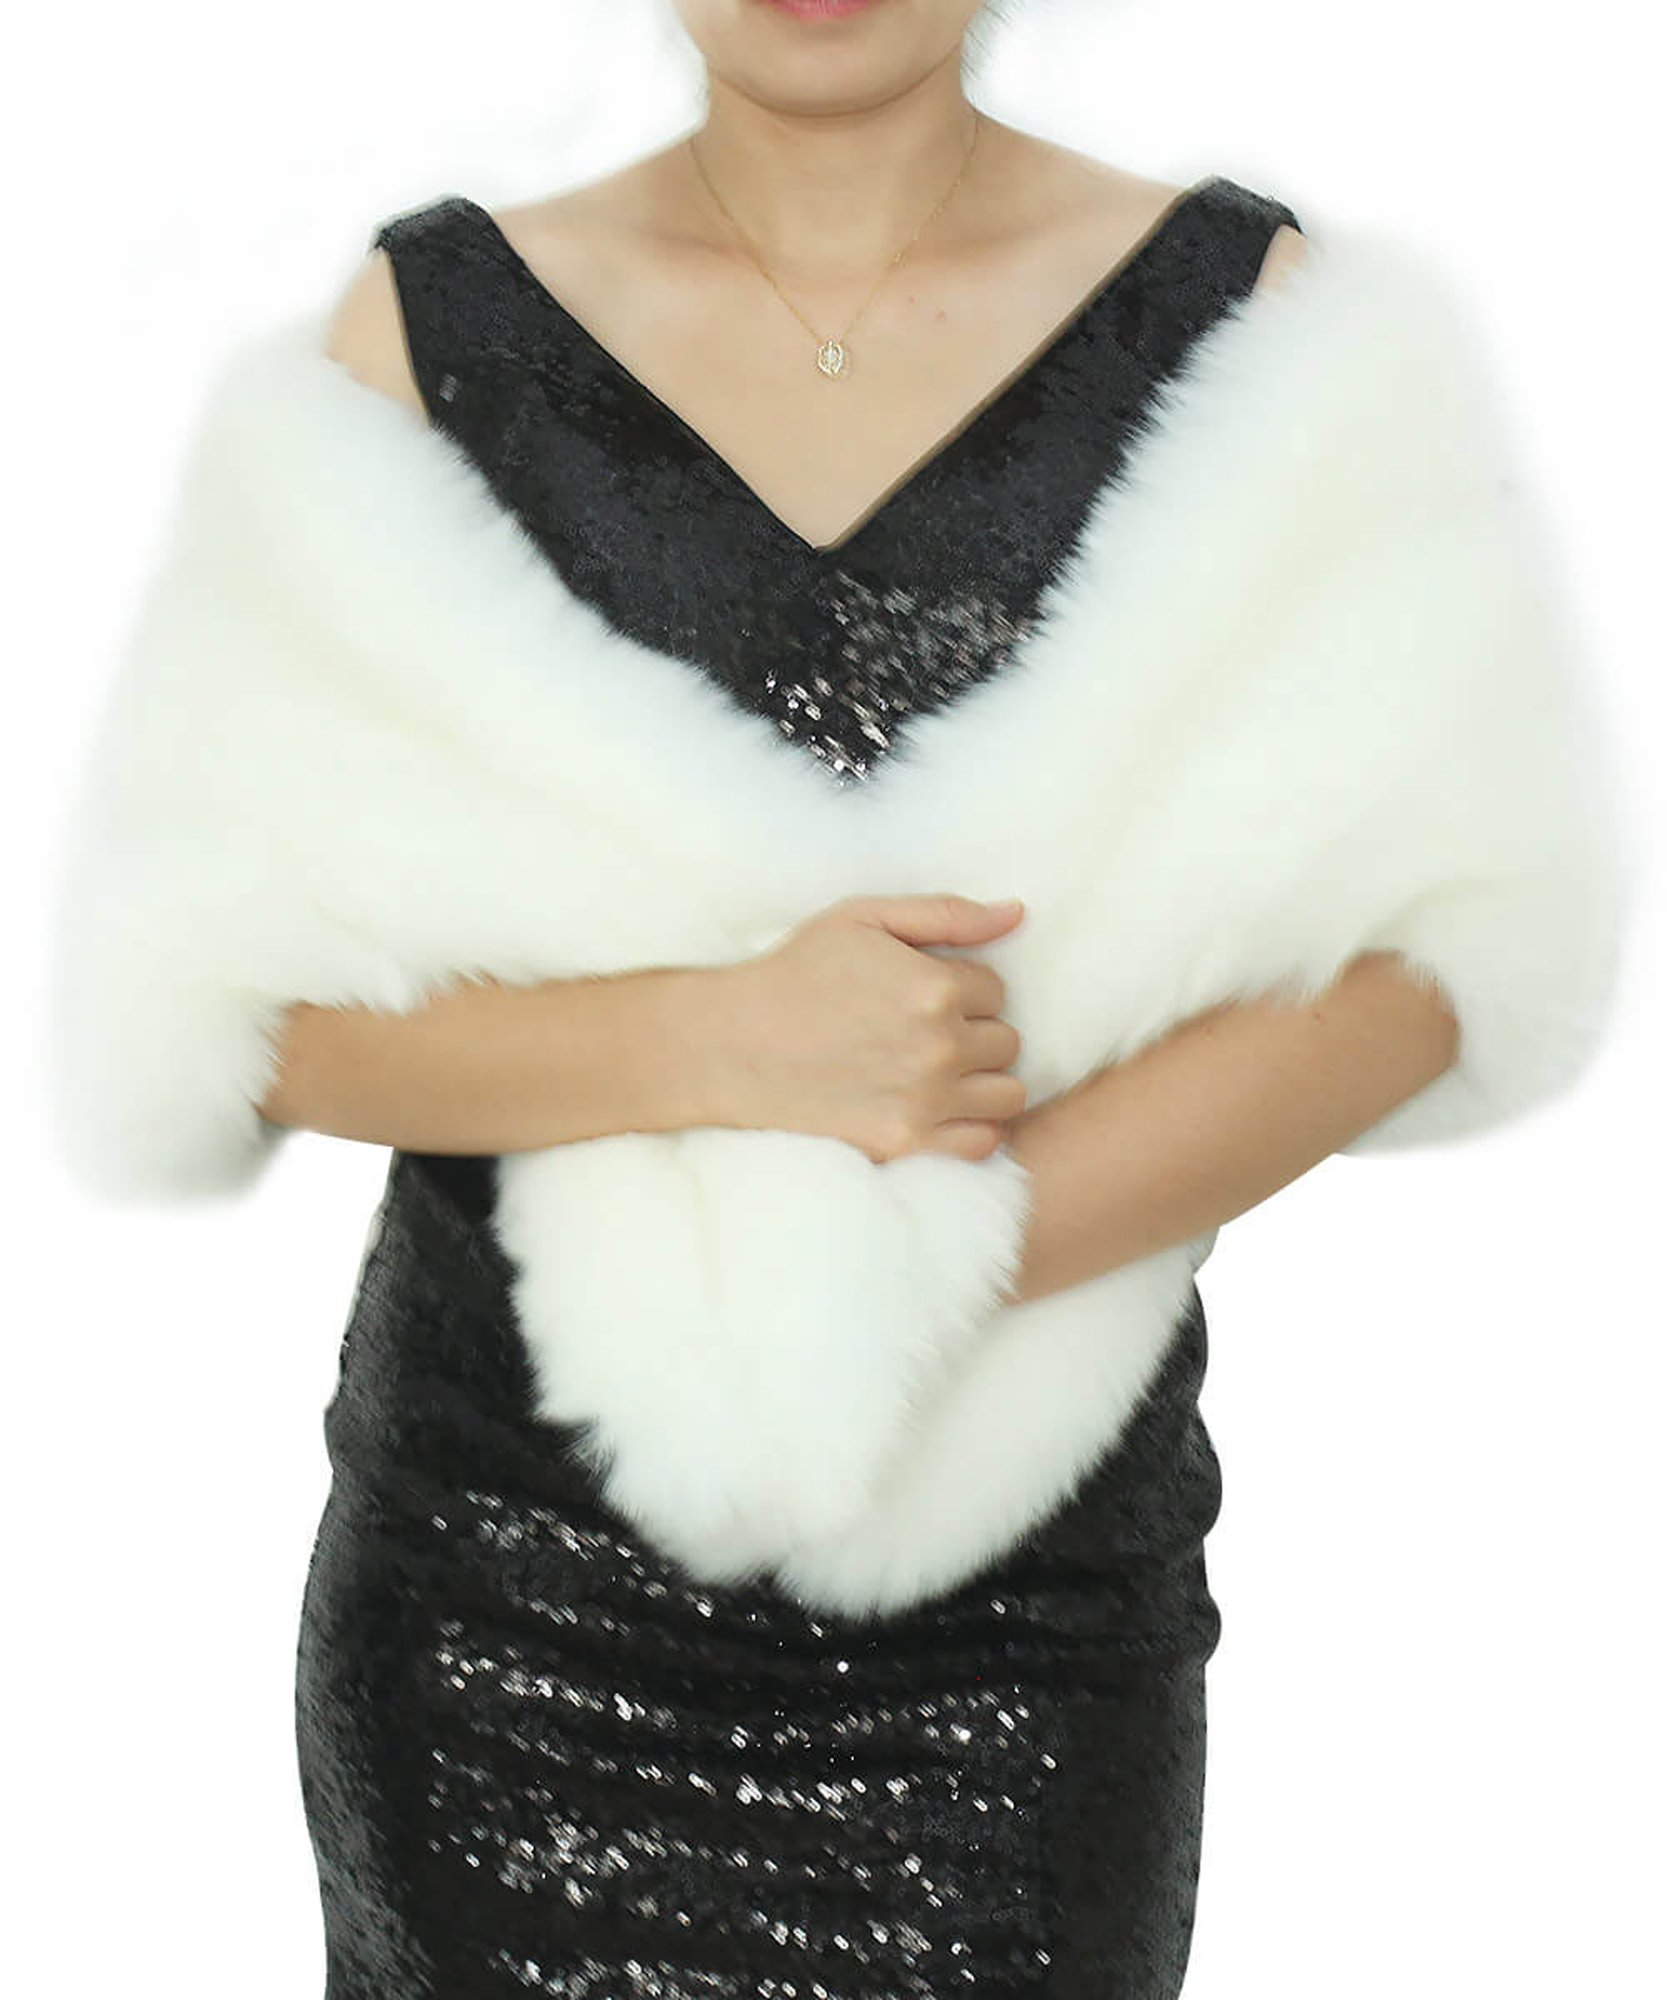 Dressblee Faux Fur Wrap Shawl Shrug Bolero Cape With side pockets, Bridal Faux Fur Jacket coat shawls -white